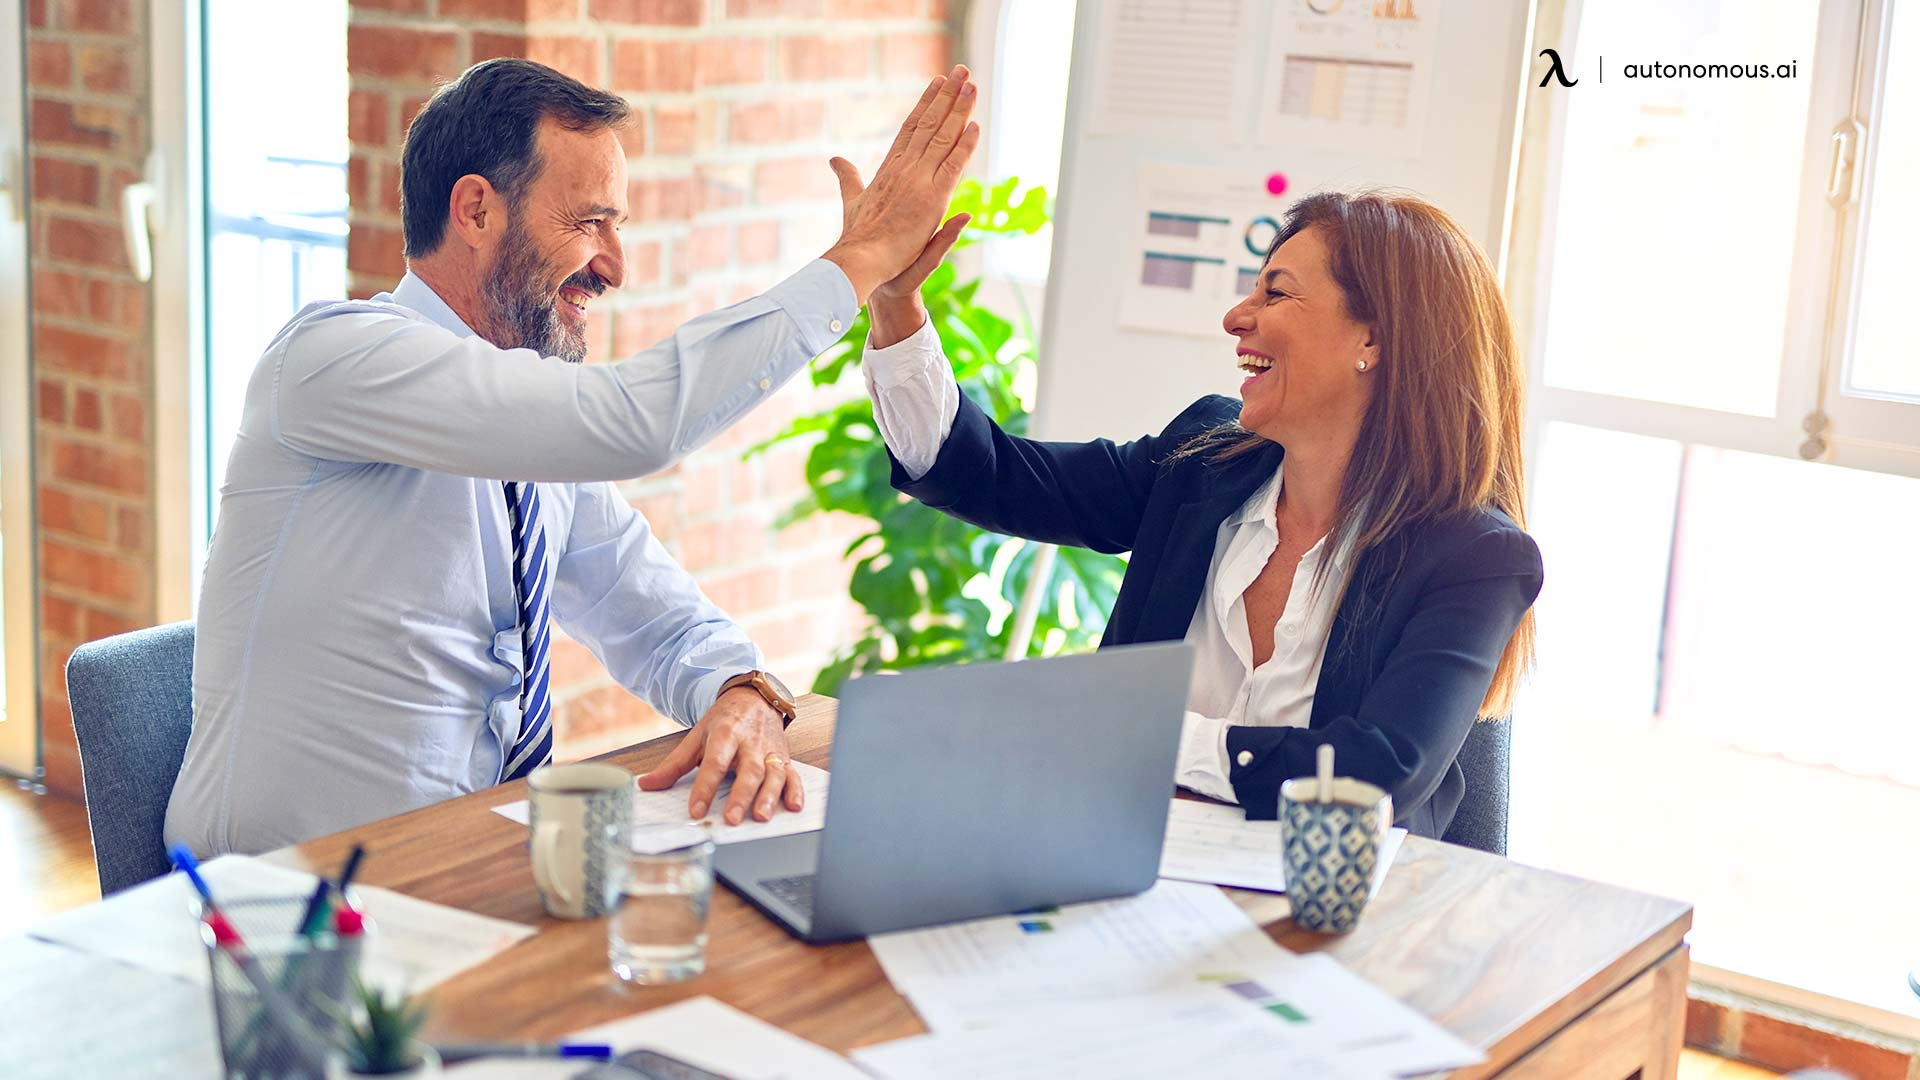 You can build trust within your workforce by talking to each employee individually